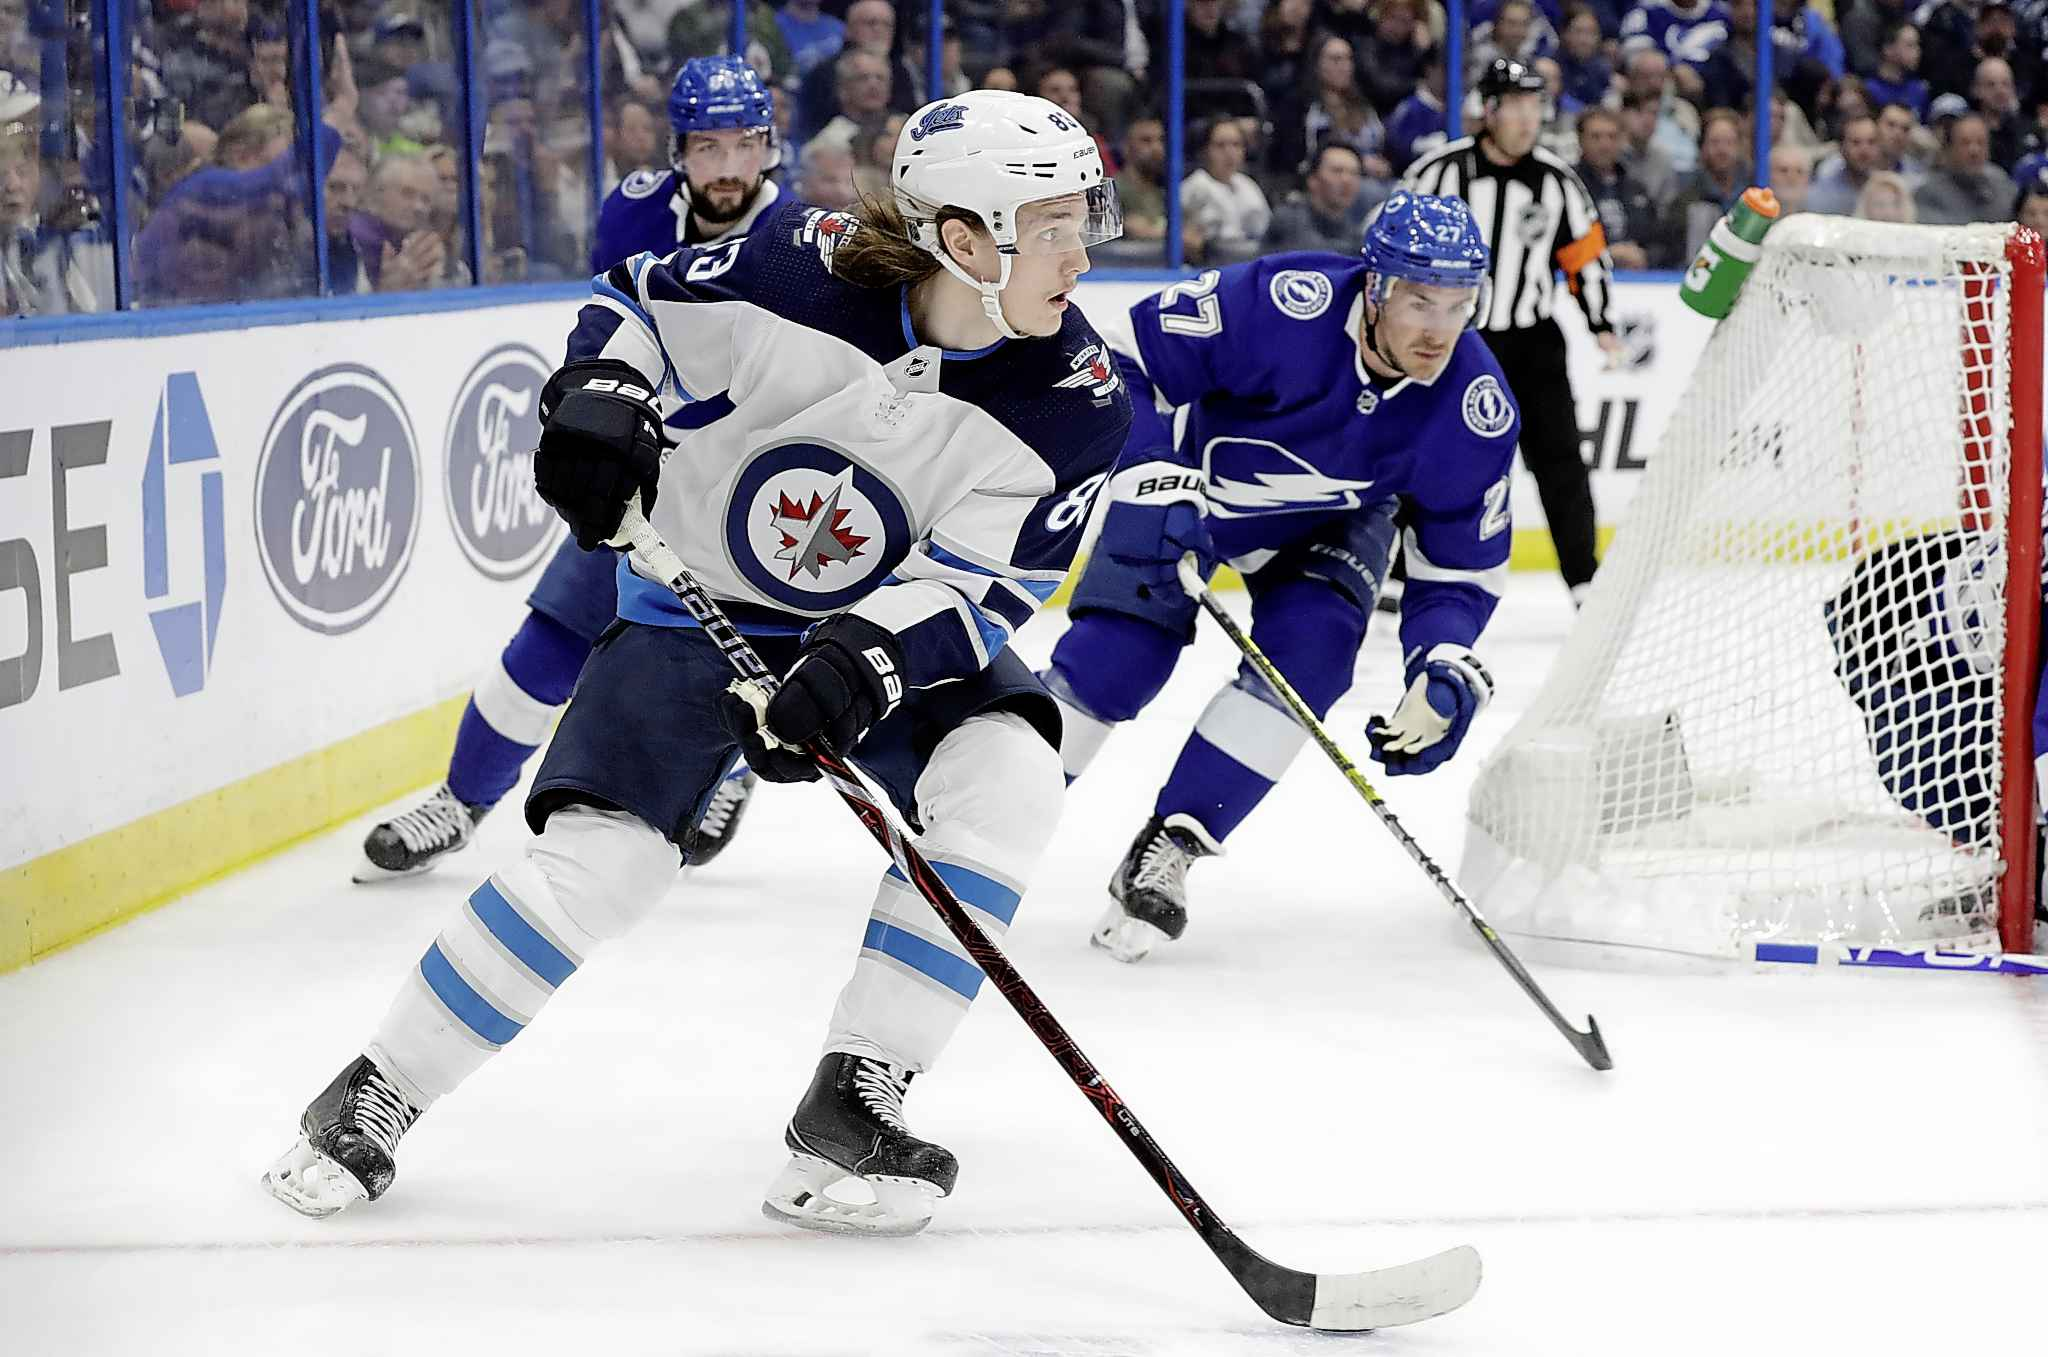 Winnipeg Jets defenceman Sami Niku carries the puck ahead of Tampa Bay Lightning defenceman Ryan McDonagh during the first period Tuesday.